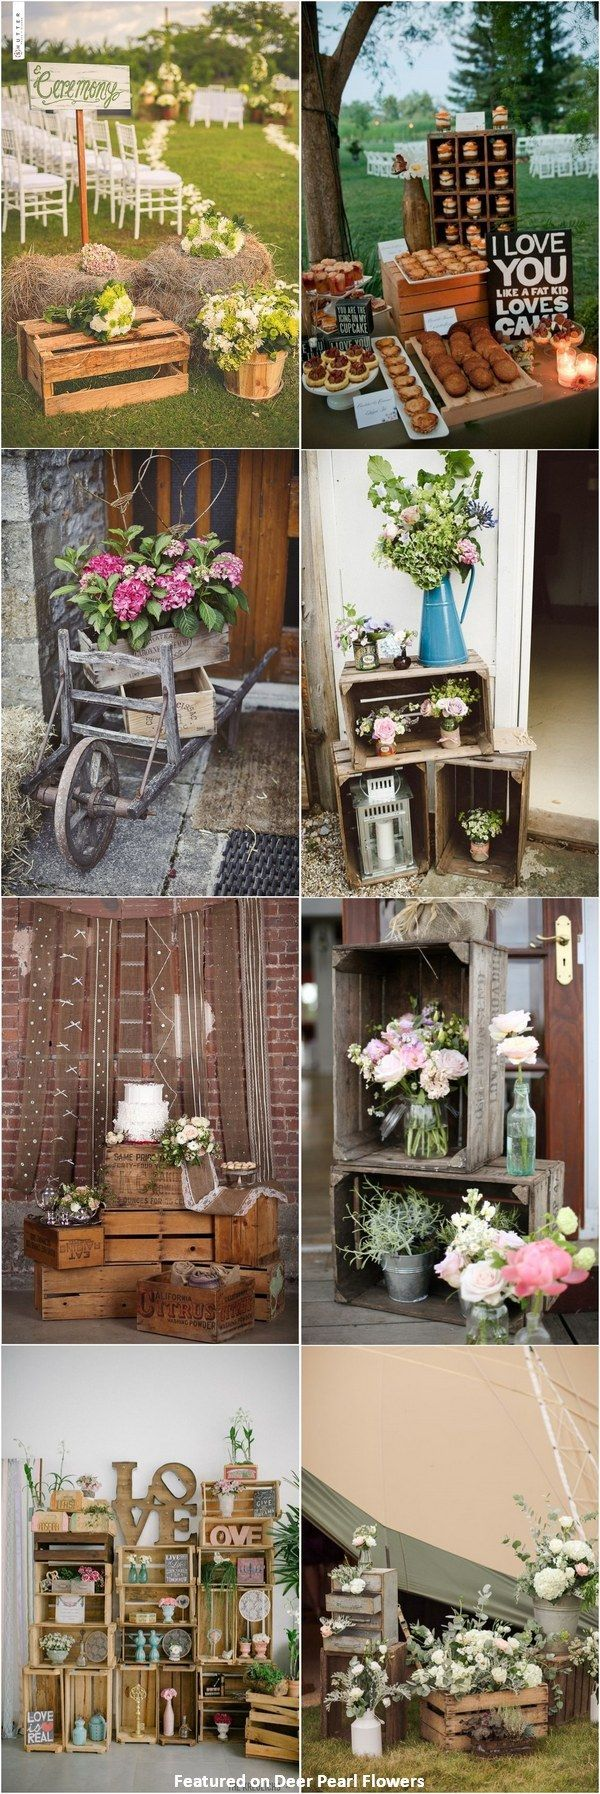 Wedding ideas rustic theme  rustic country wooden crate wedding decor ideas